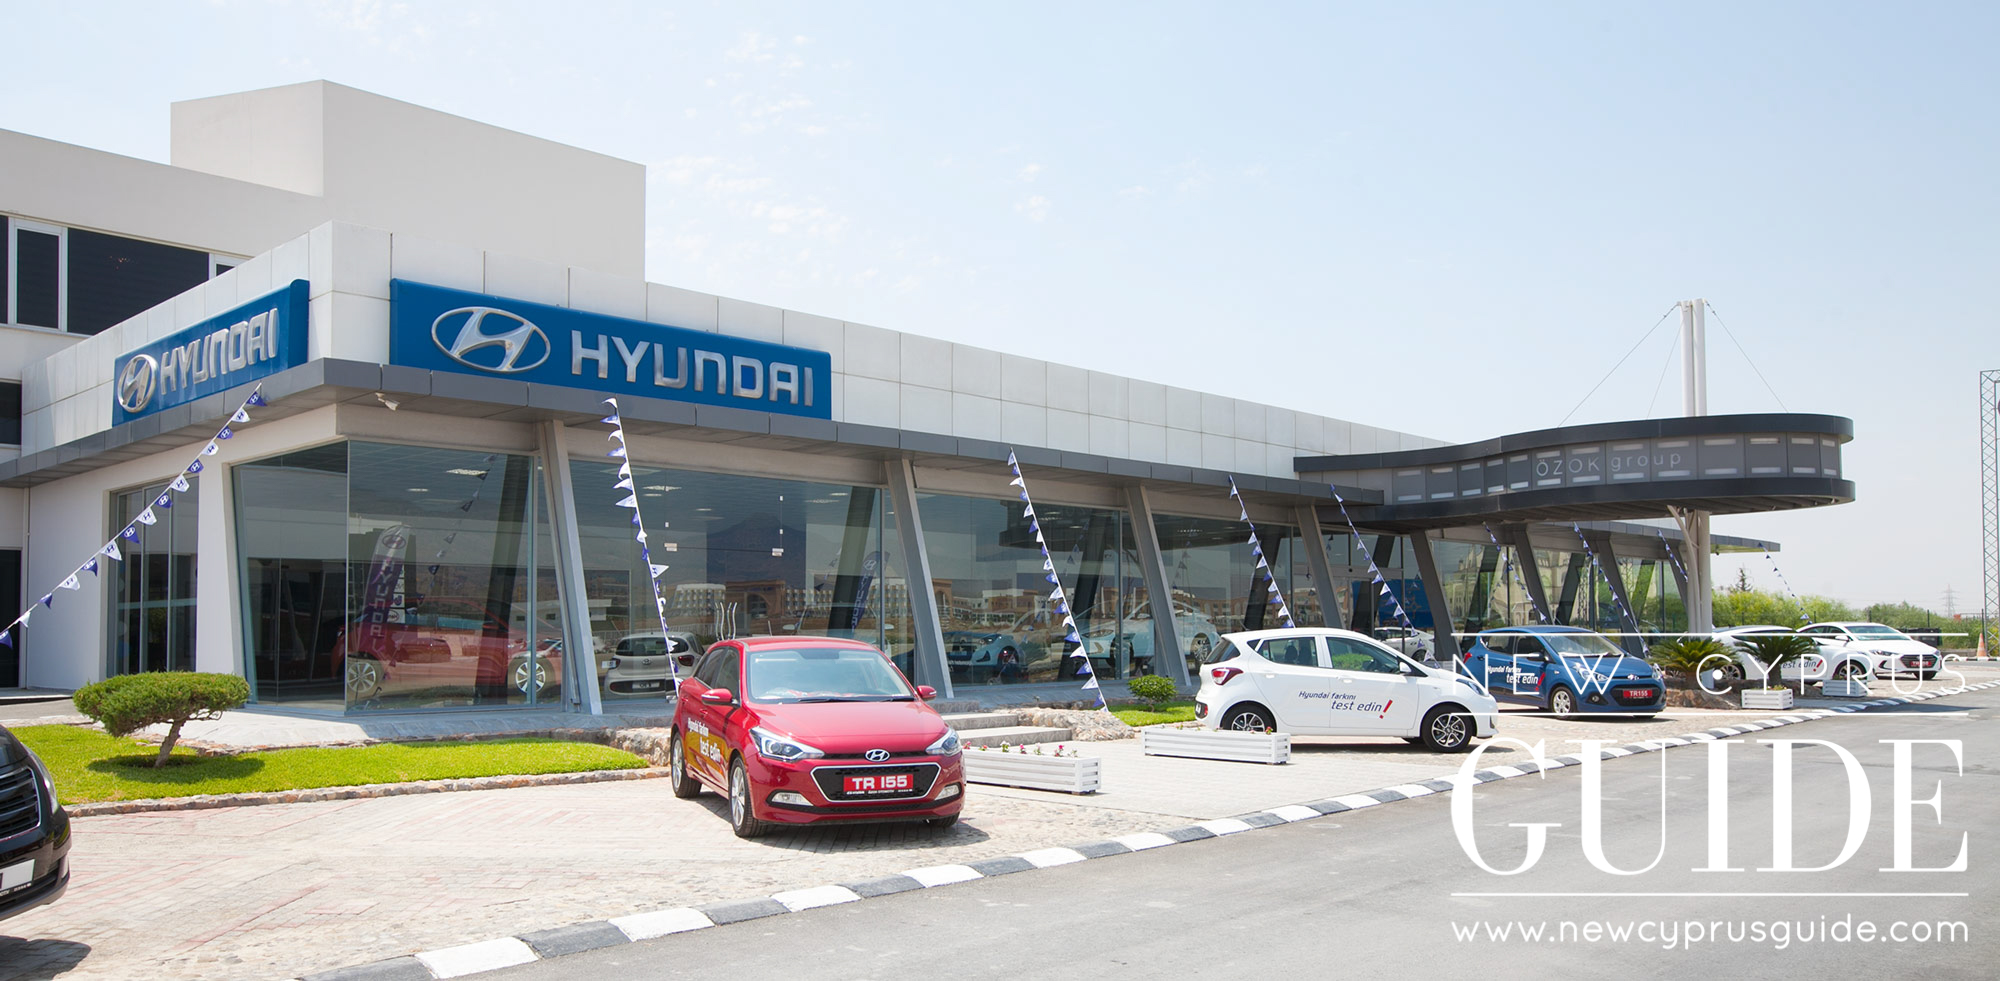 The Hyundai Asok garage in Lefkosa